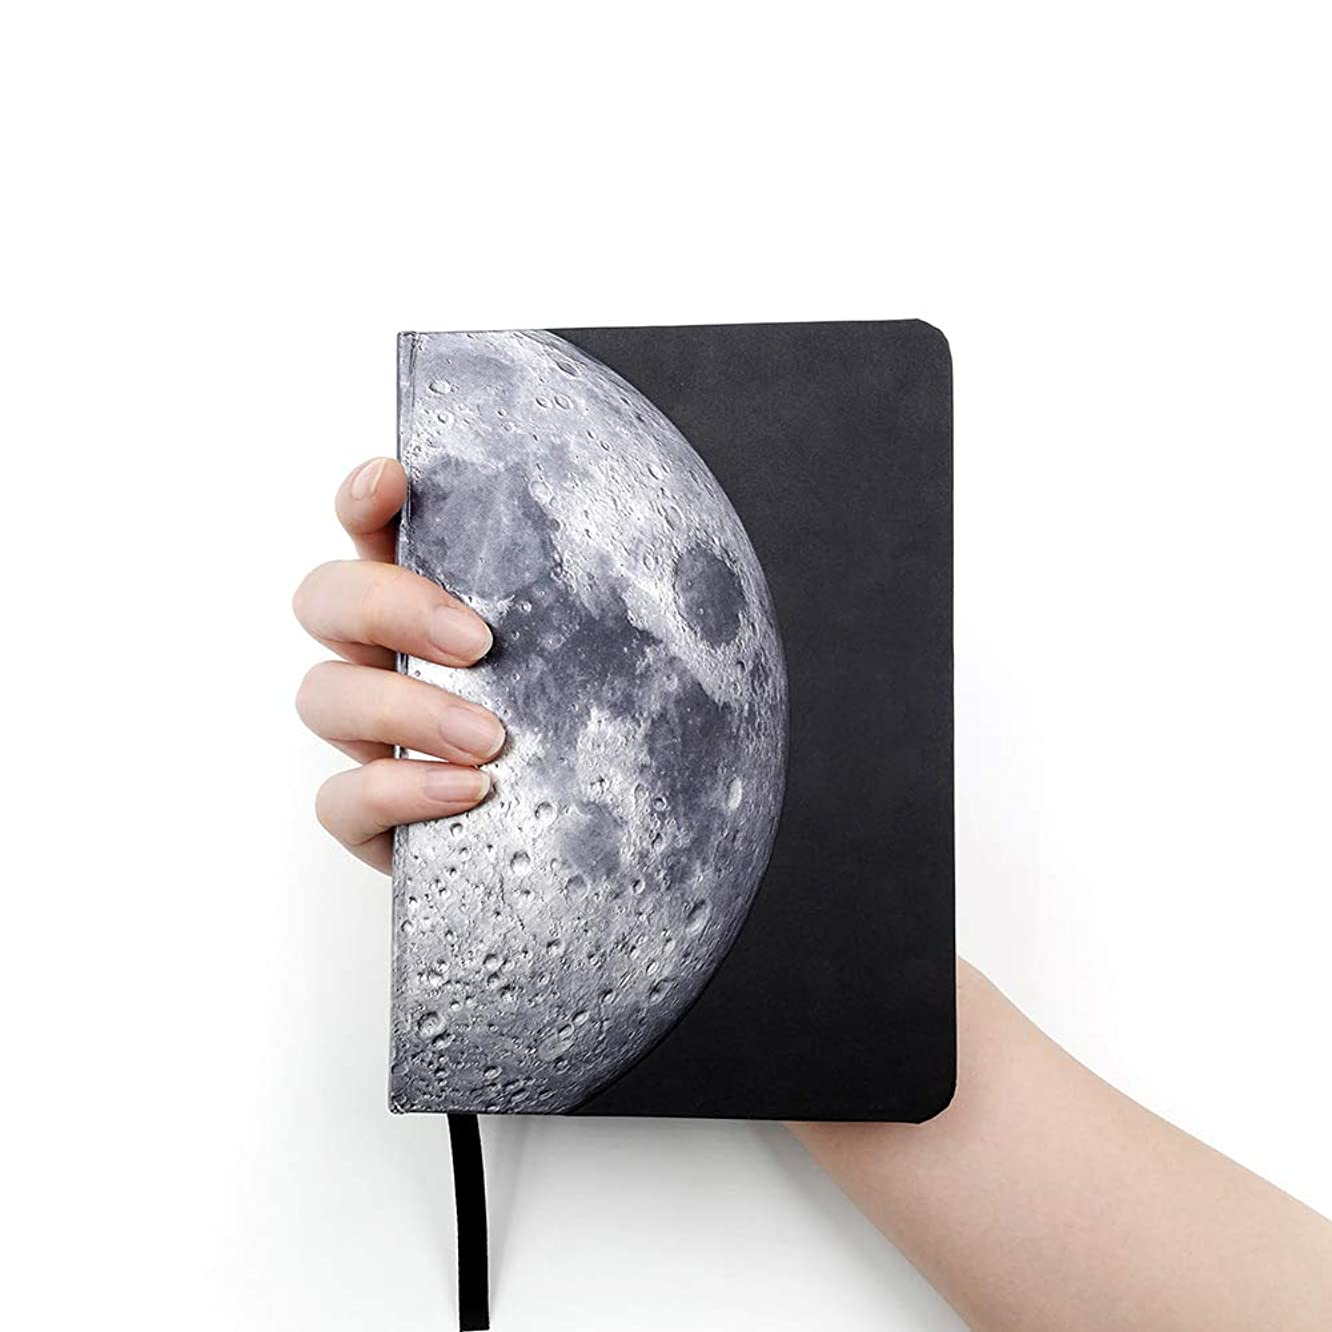 AstroReality LUNAR AR Notebook | Embossed Hardcover, Writing Journal, Wire Bound Notepad, Travel Diary | Augmented Reality Enabled | 5x7 Inches, 176 Pages | Space Gift for All Ages